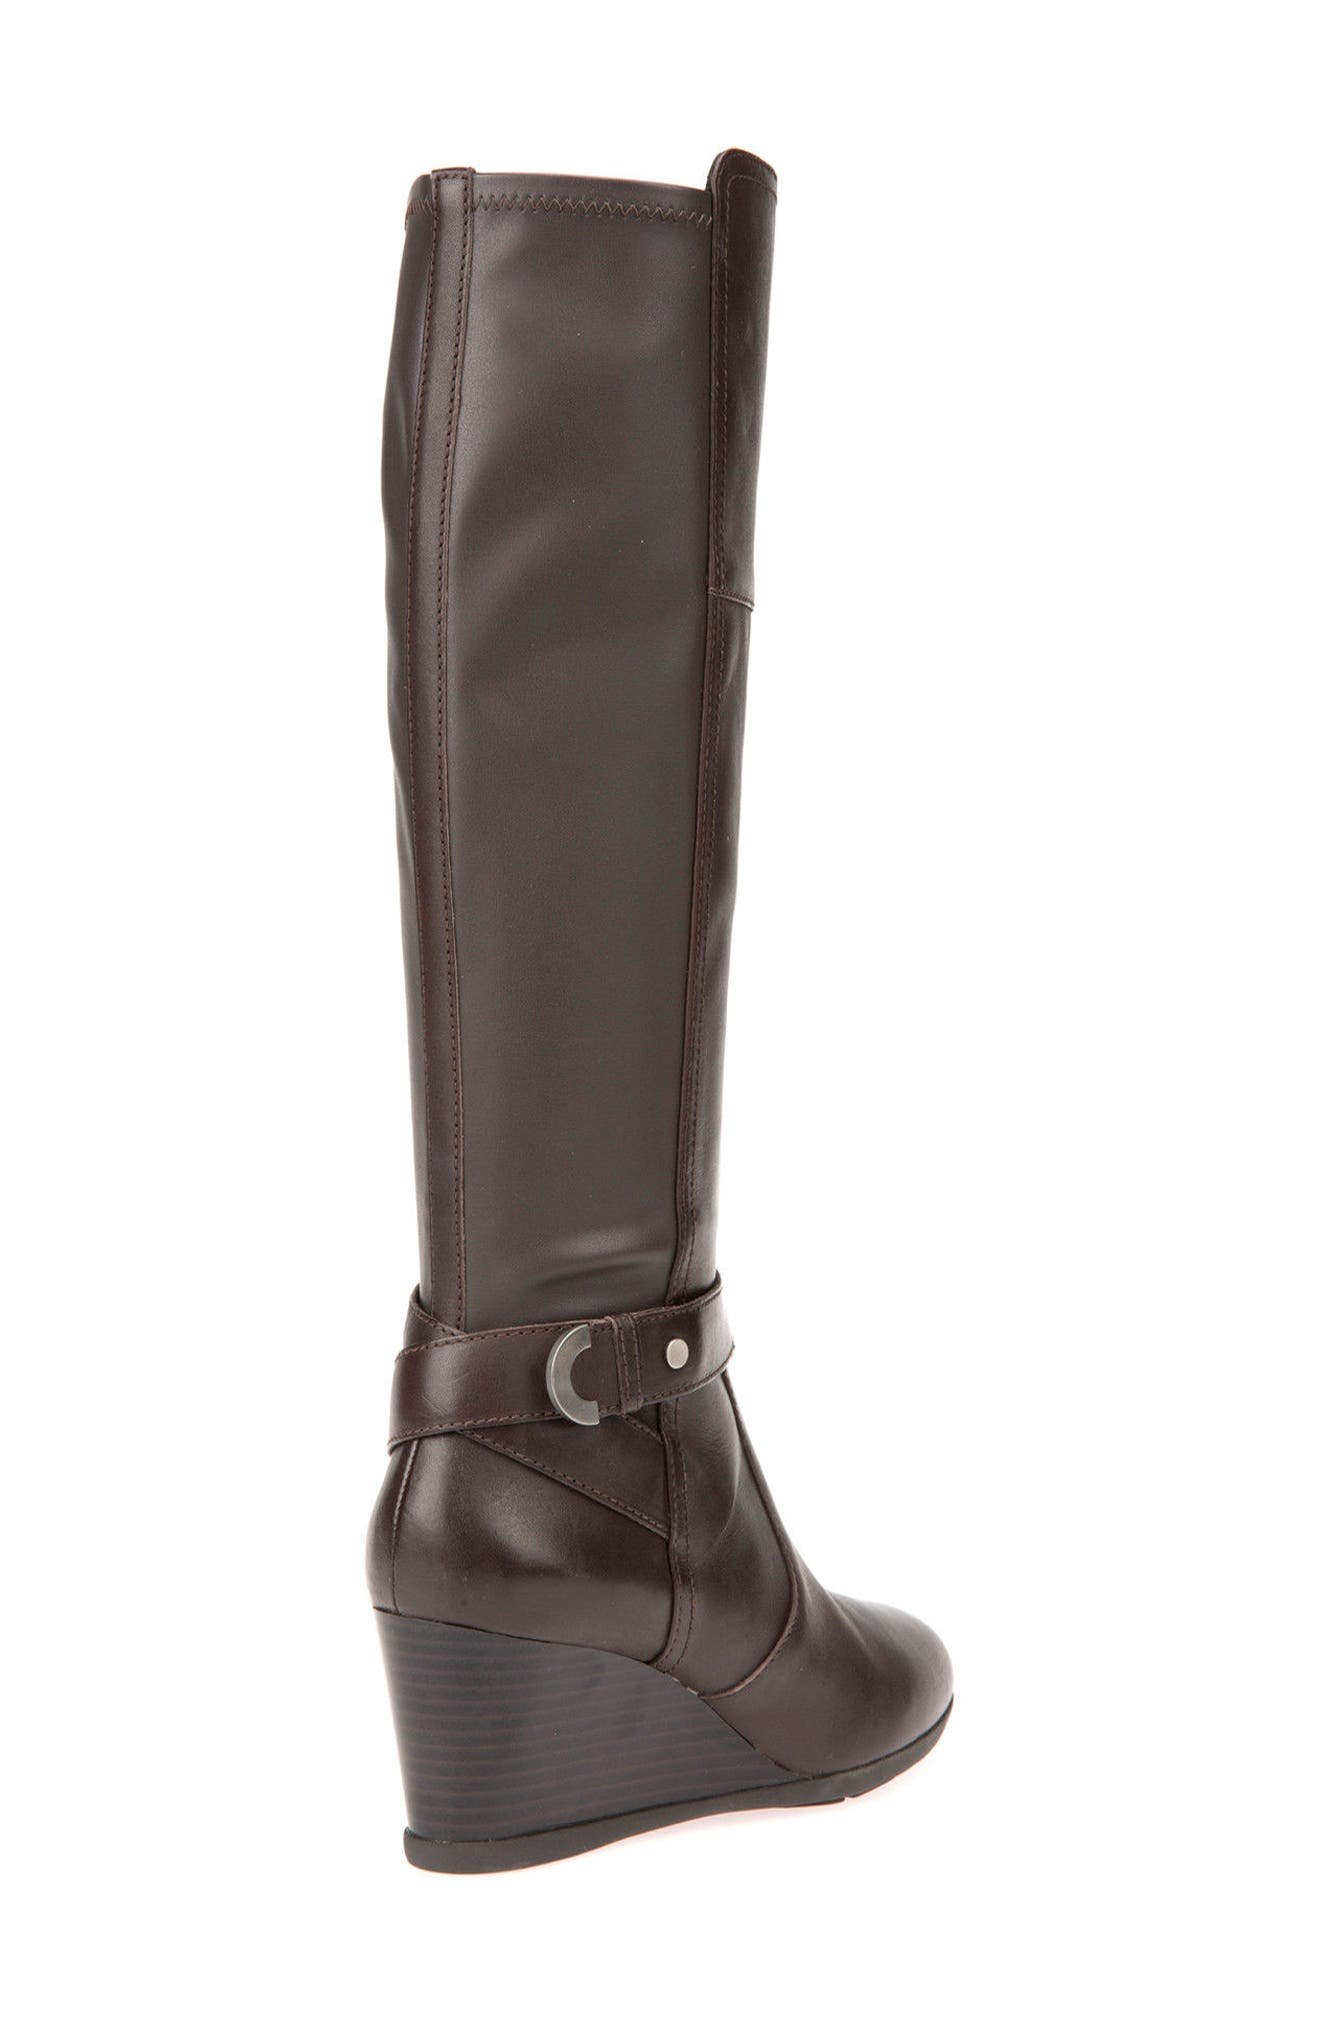 Inspiration Knee High Wedge Boot,                             Alternate thumbnail 2, color,                             COFFEE LEATHER